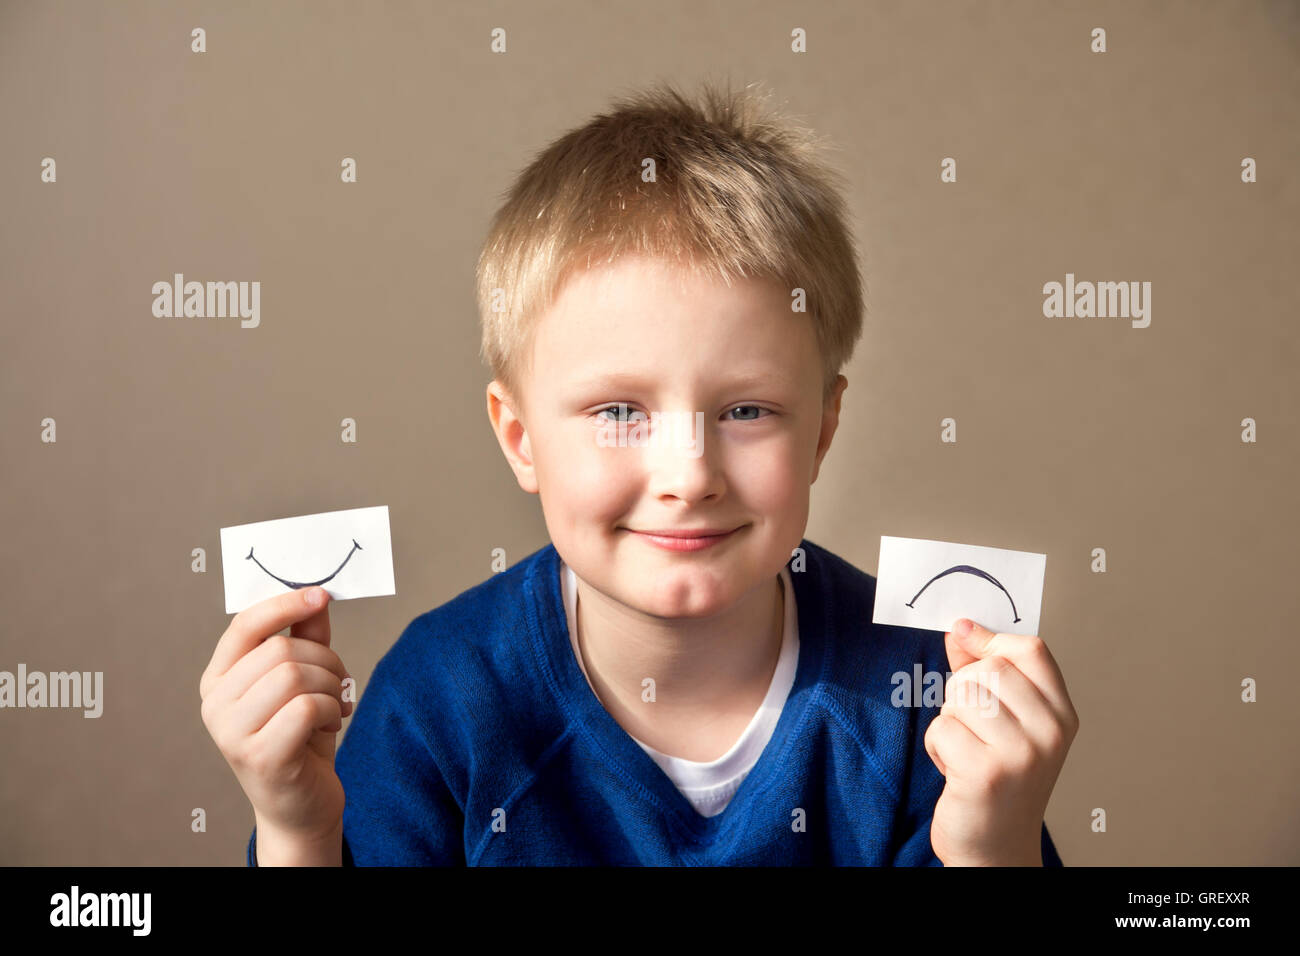 Young boy select between positive and negative expressions - Stock Image